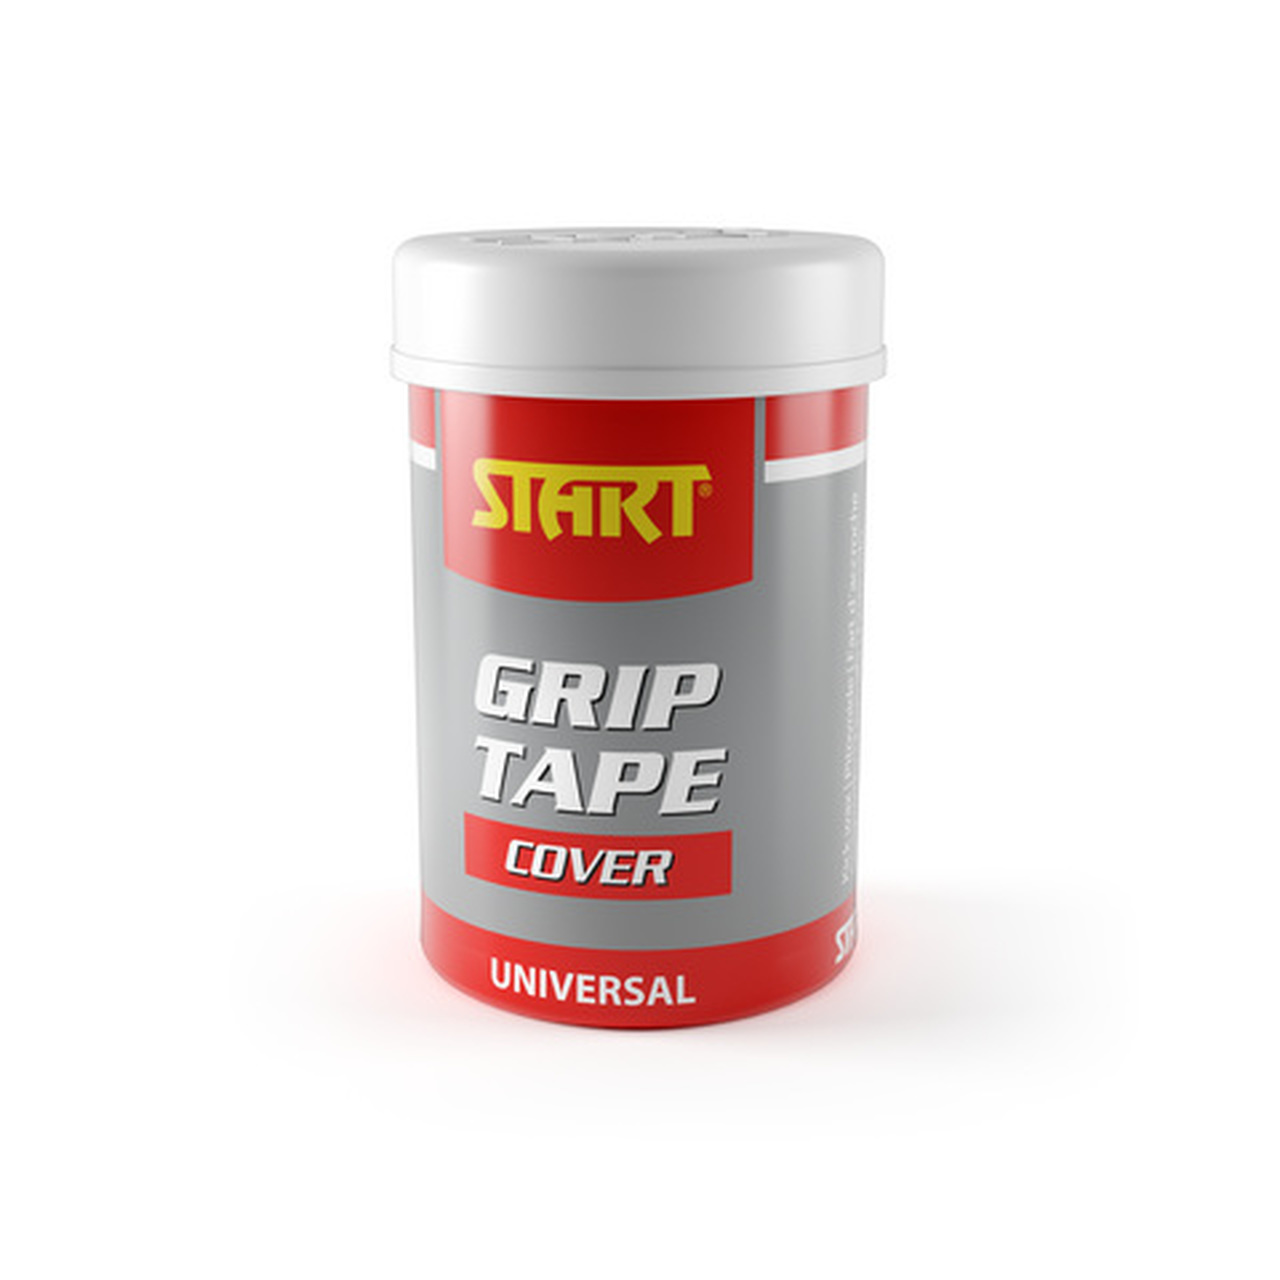 Start Grip Tape Cover Wax 30g